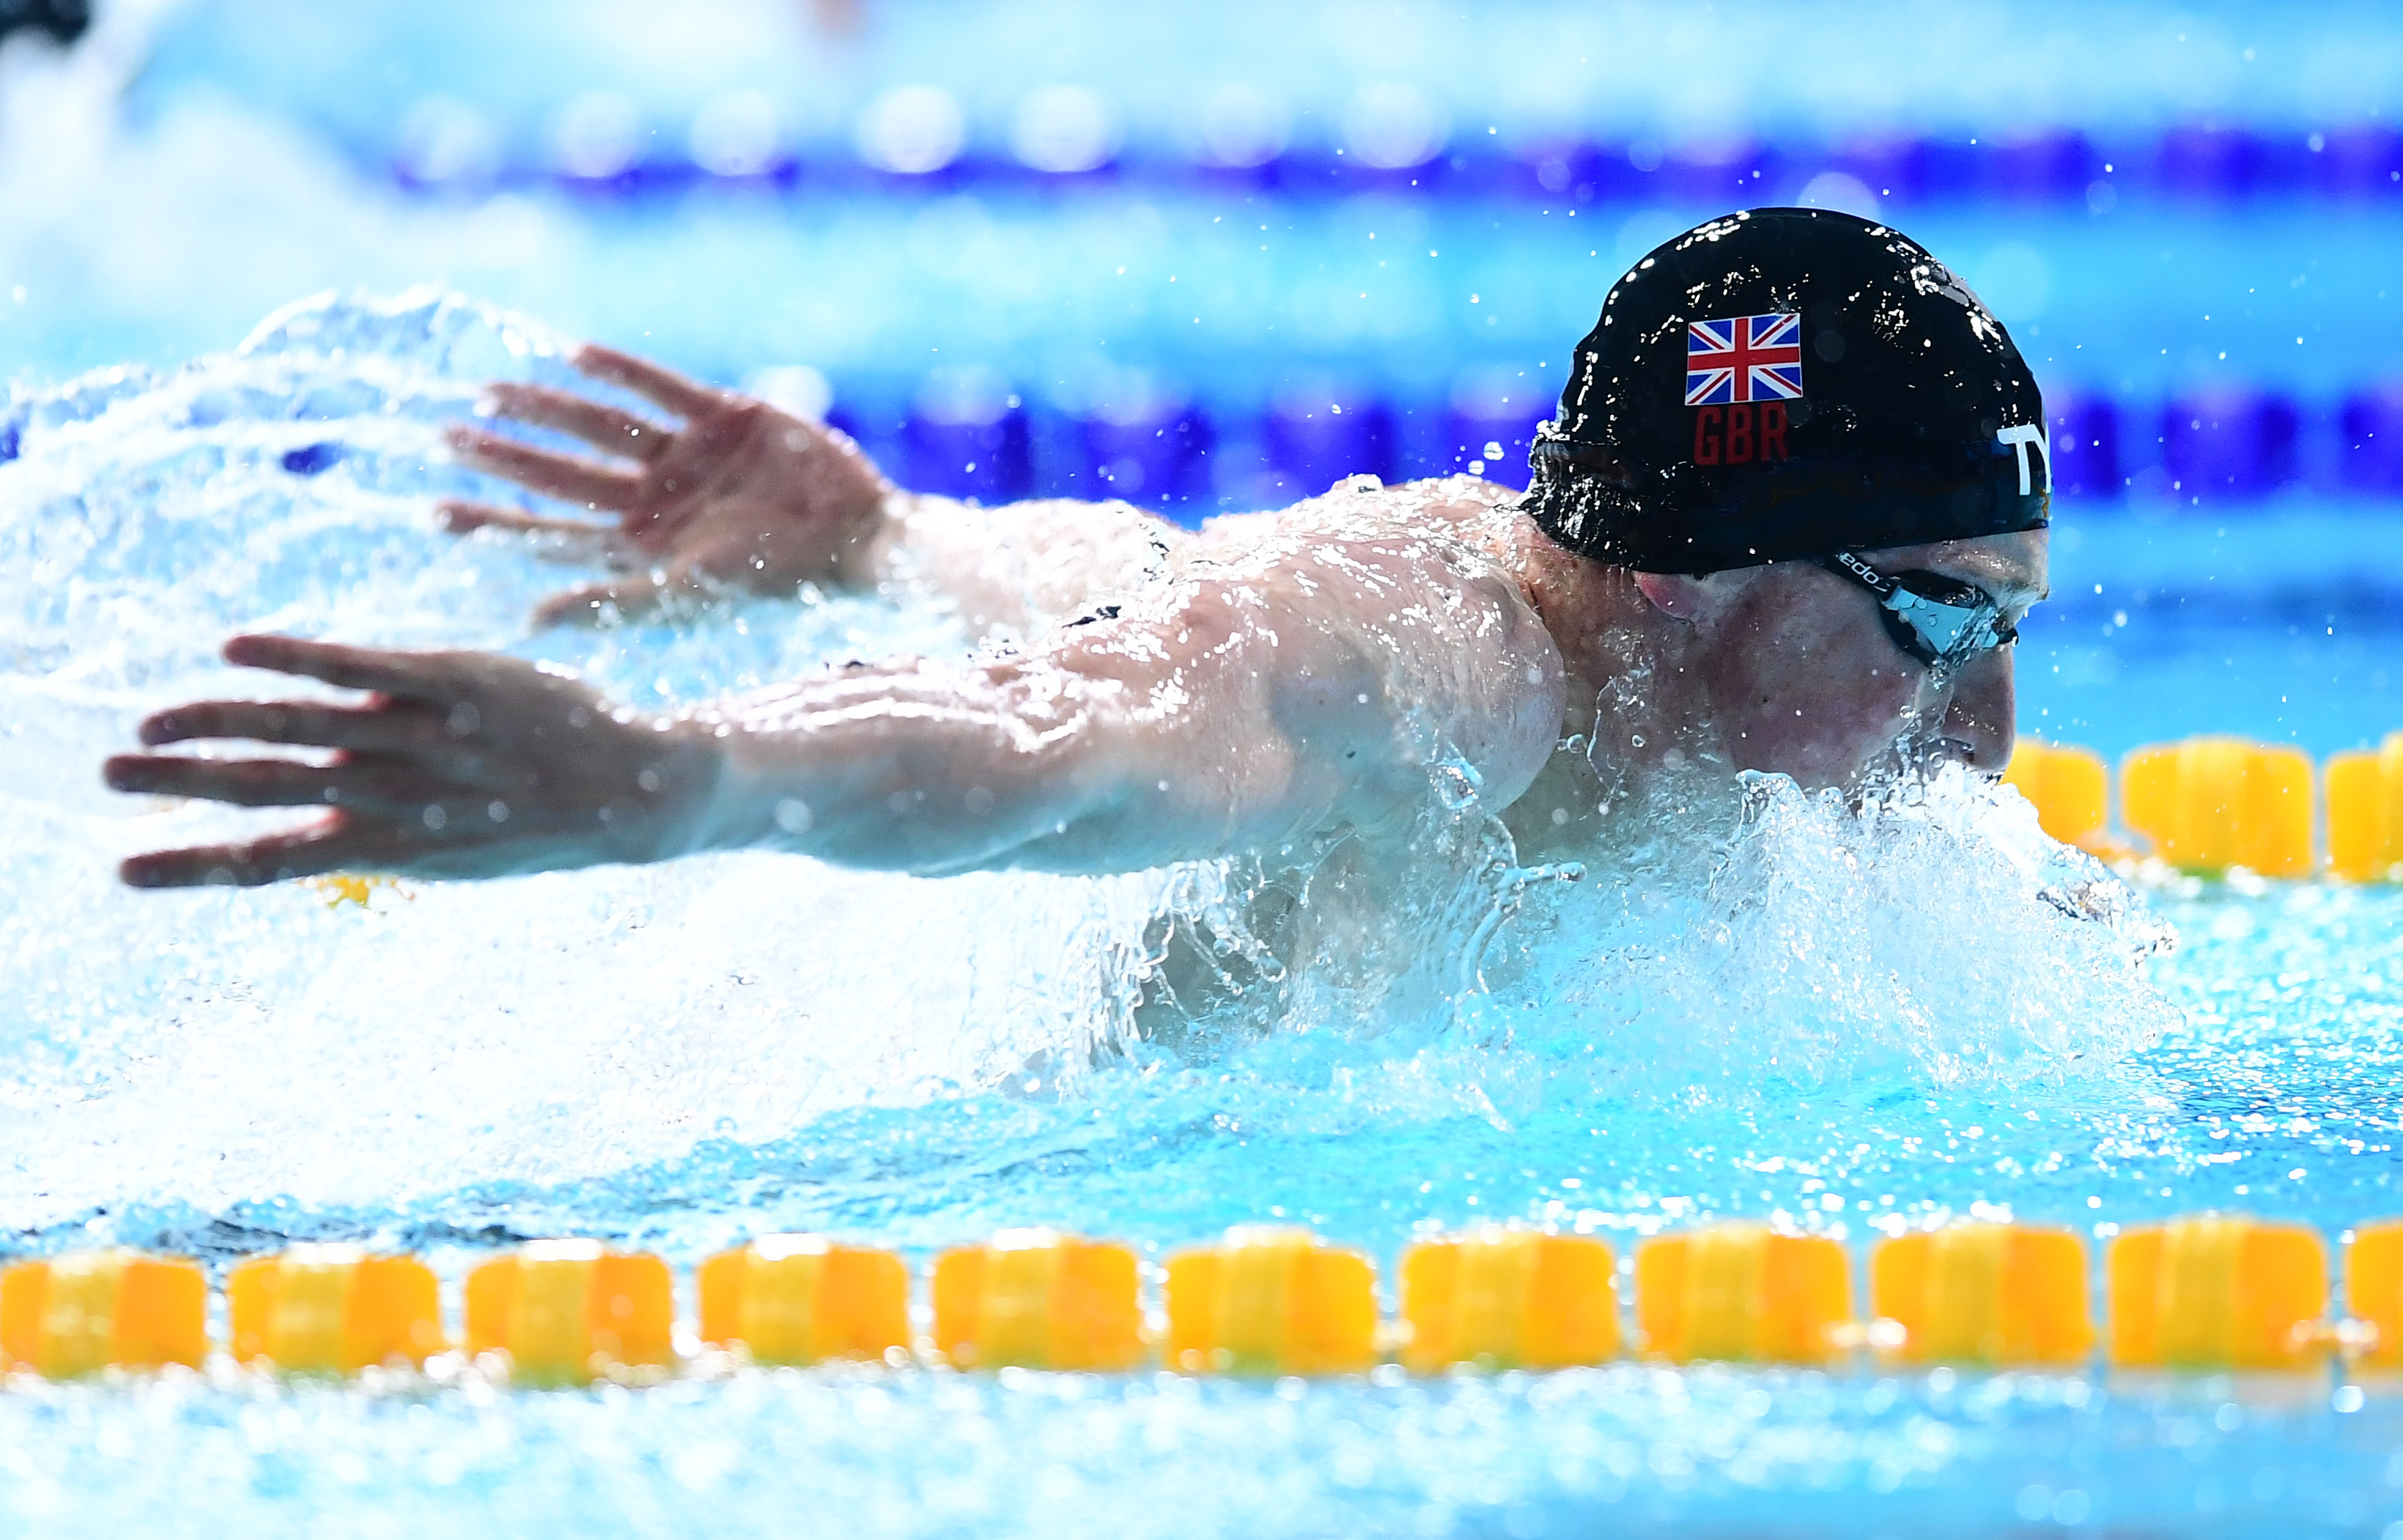 Litchfield using the spirit of Stokes to spur him on to Glasgow success